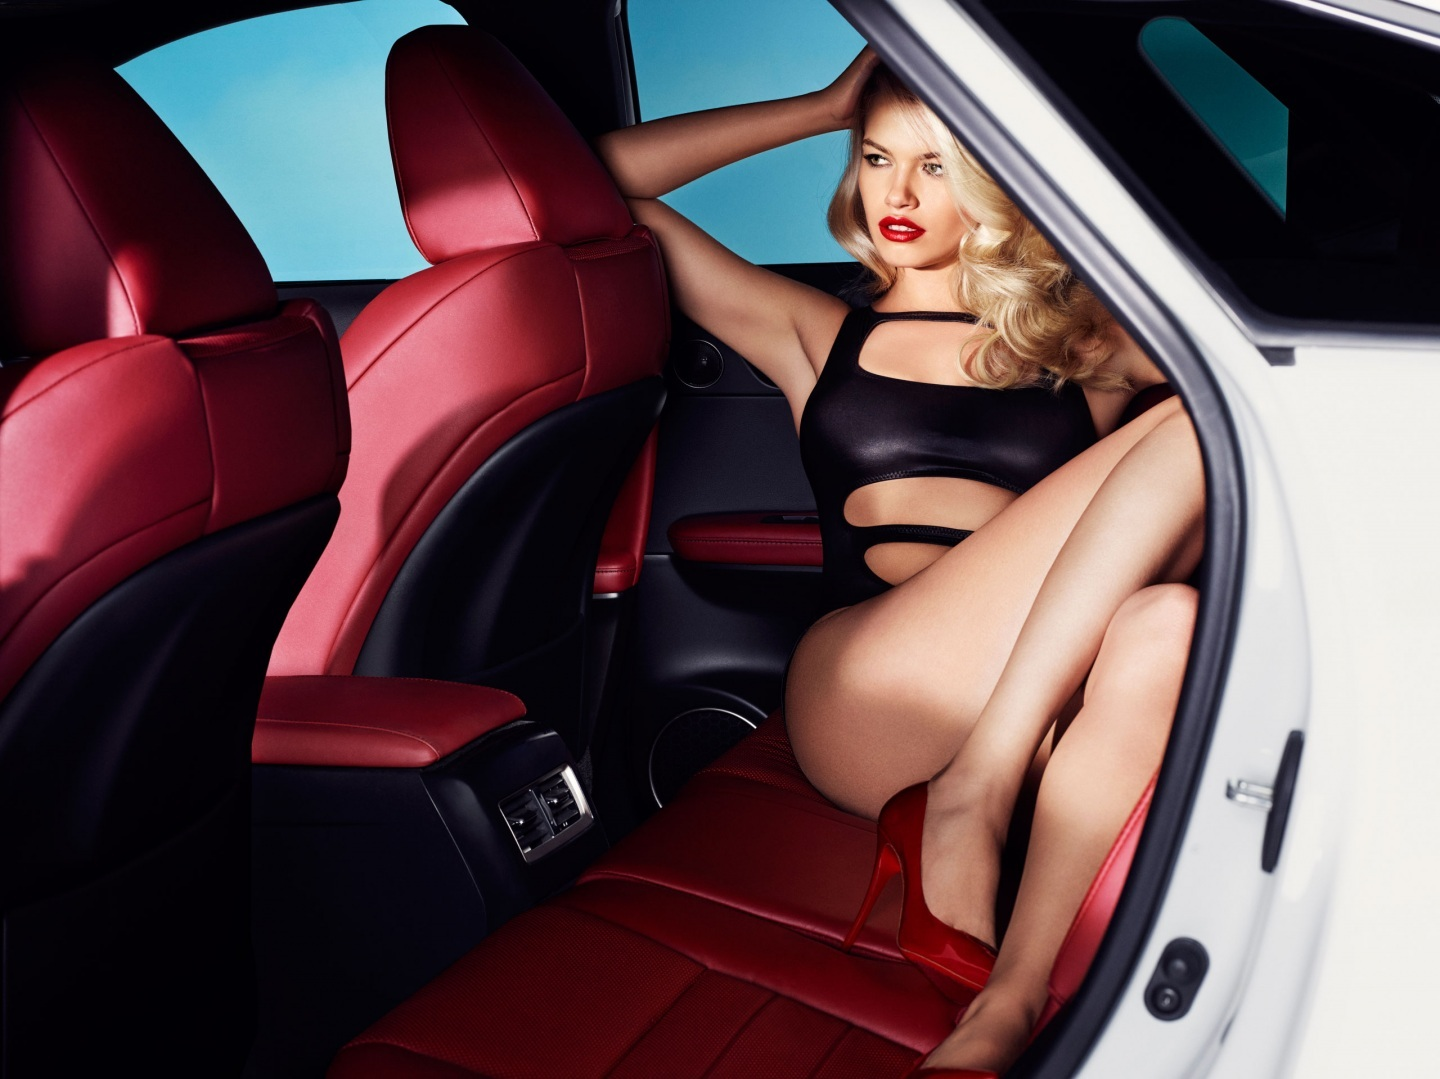 Lexus Rx Stars In Sports Illustrated Shoot With Hailey Clauson Hailey Clauson